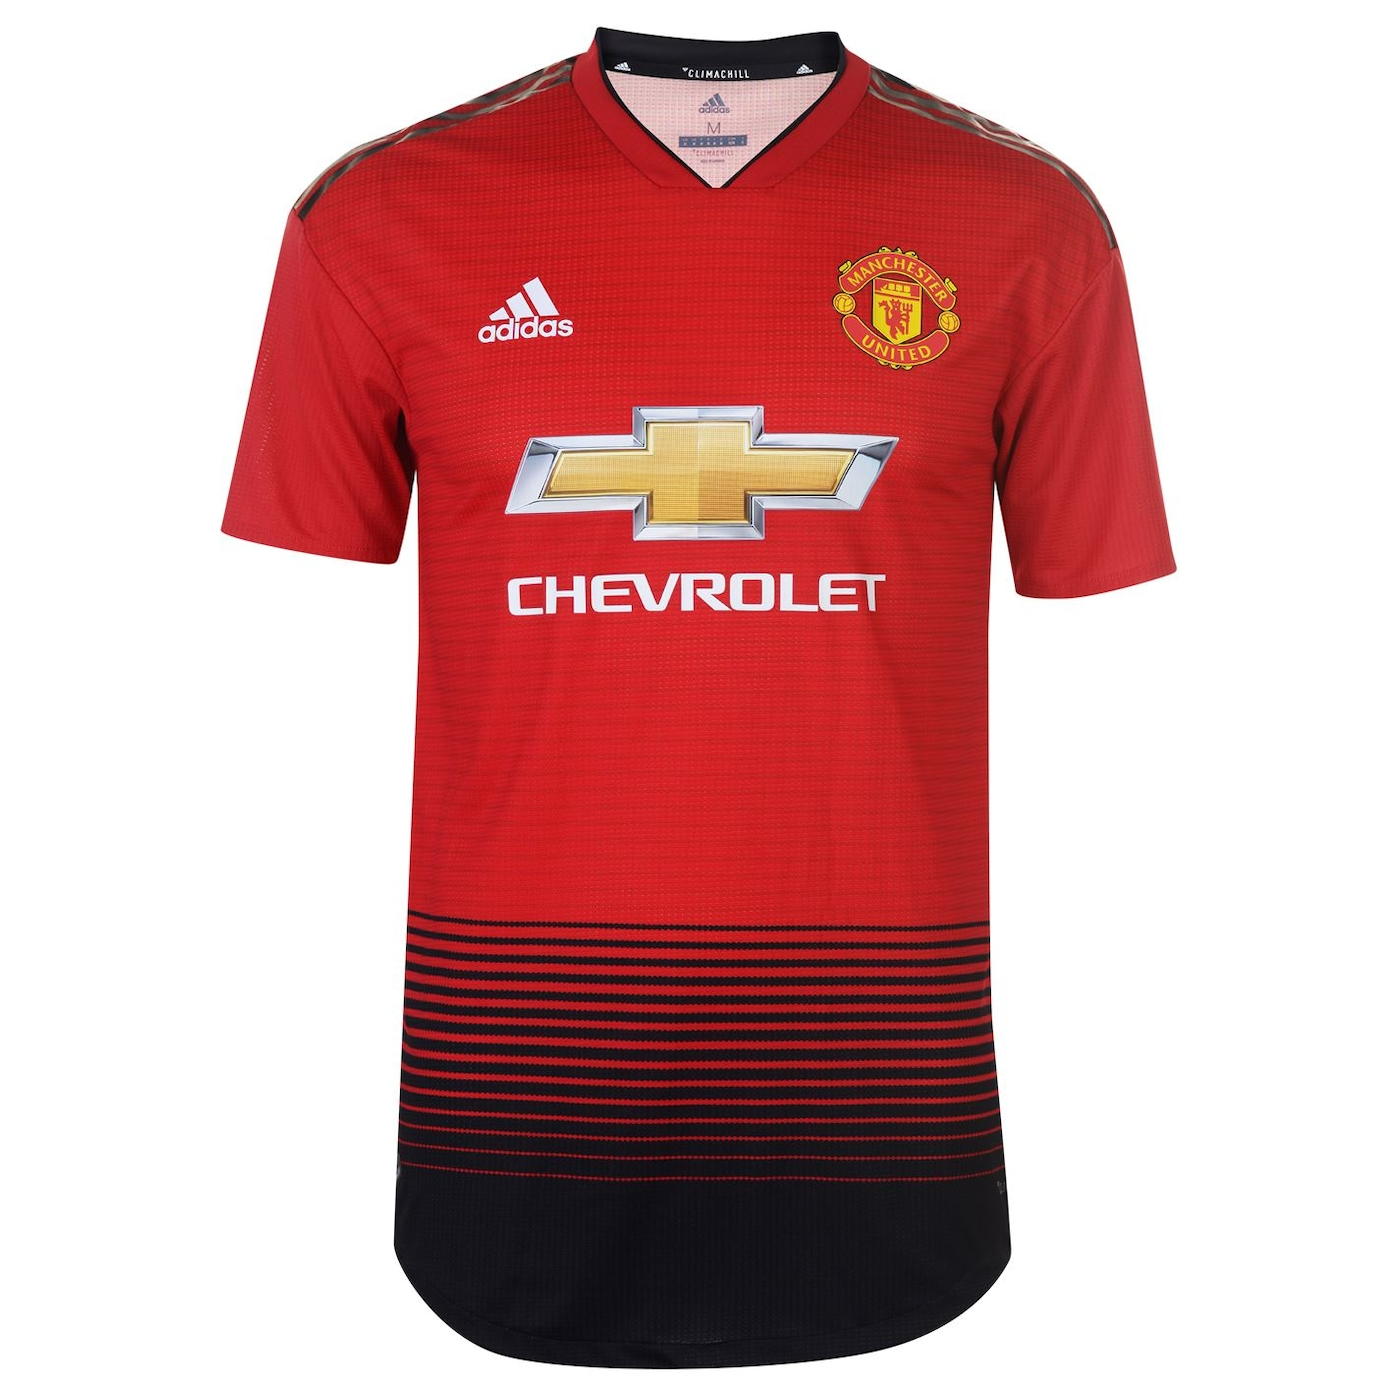 0cab685ba5 adidas Manchester United Home Authentic Shirt 2018 2019